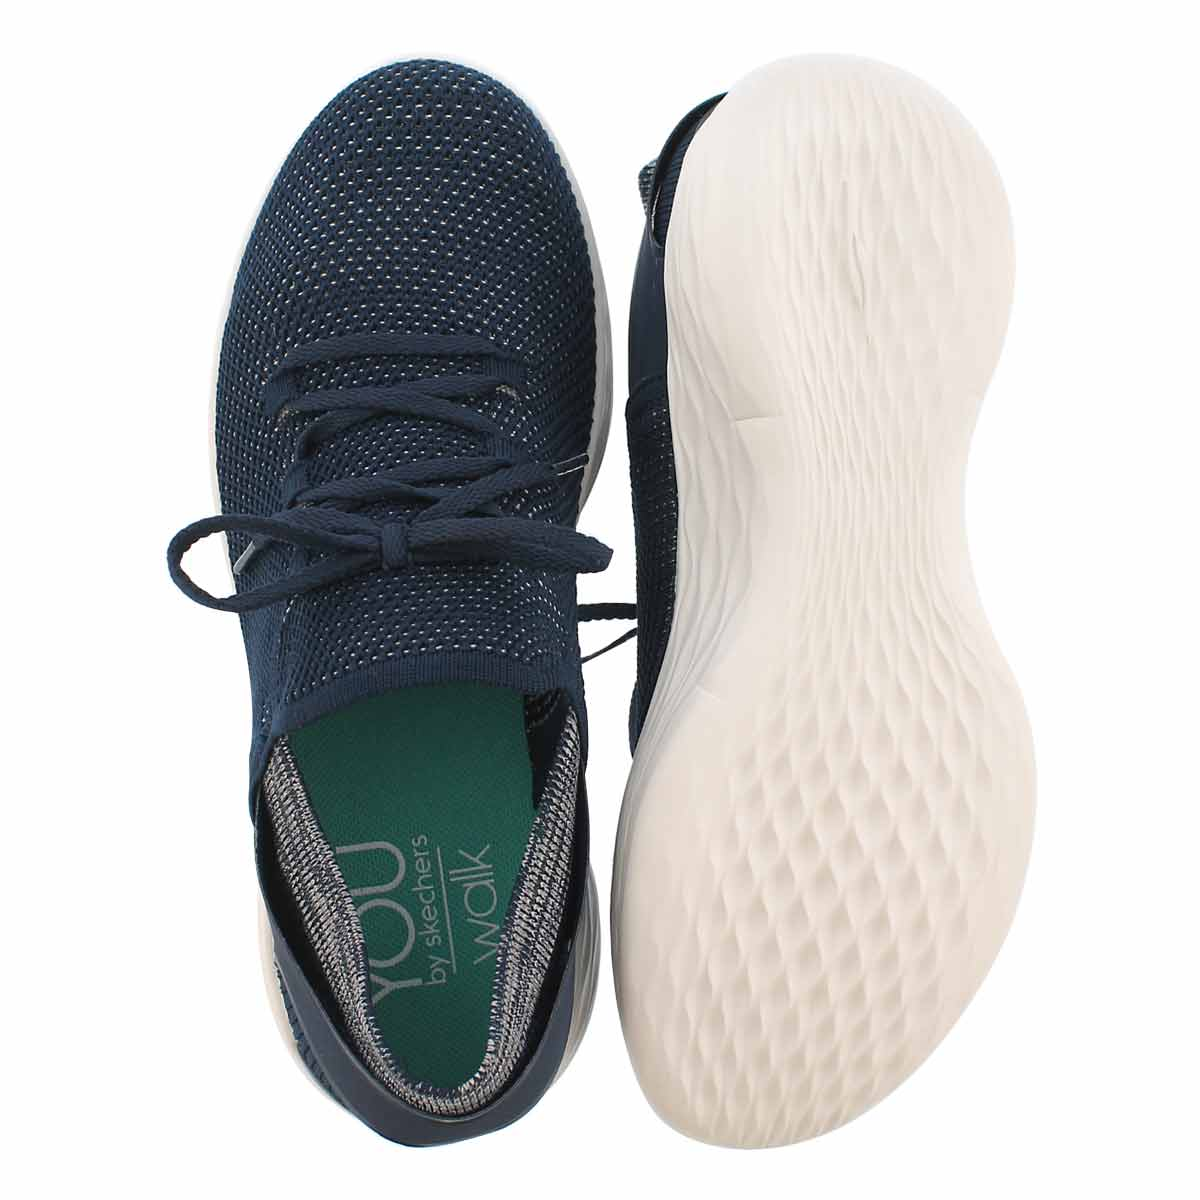 Lds YOU Spirit nvy/wht slip on snkr